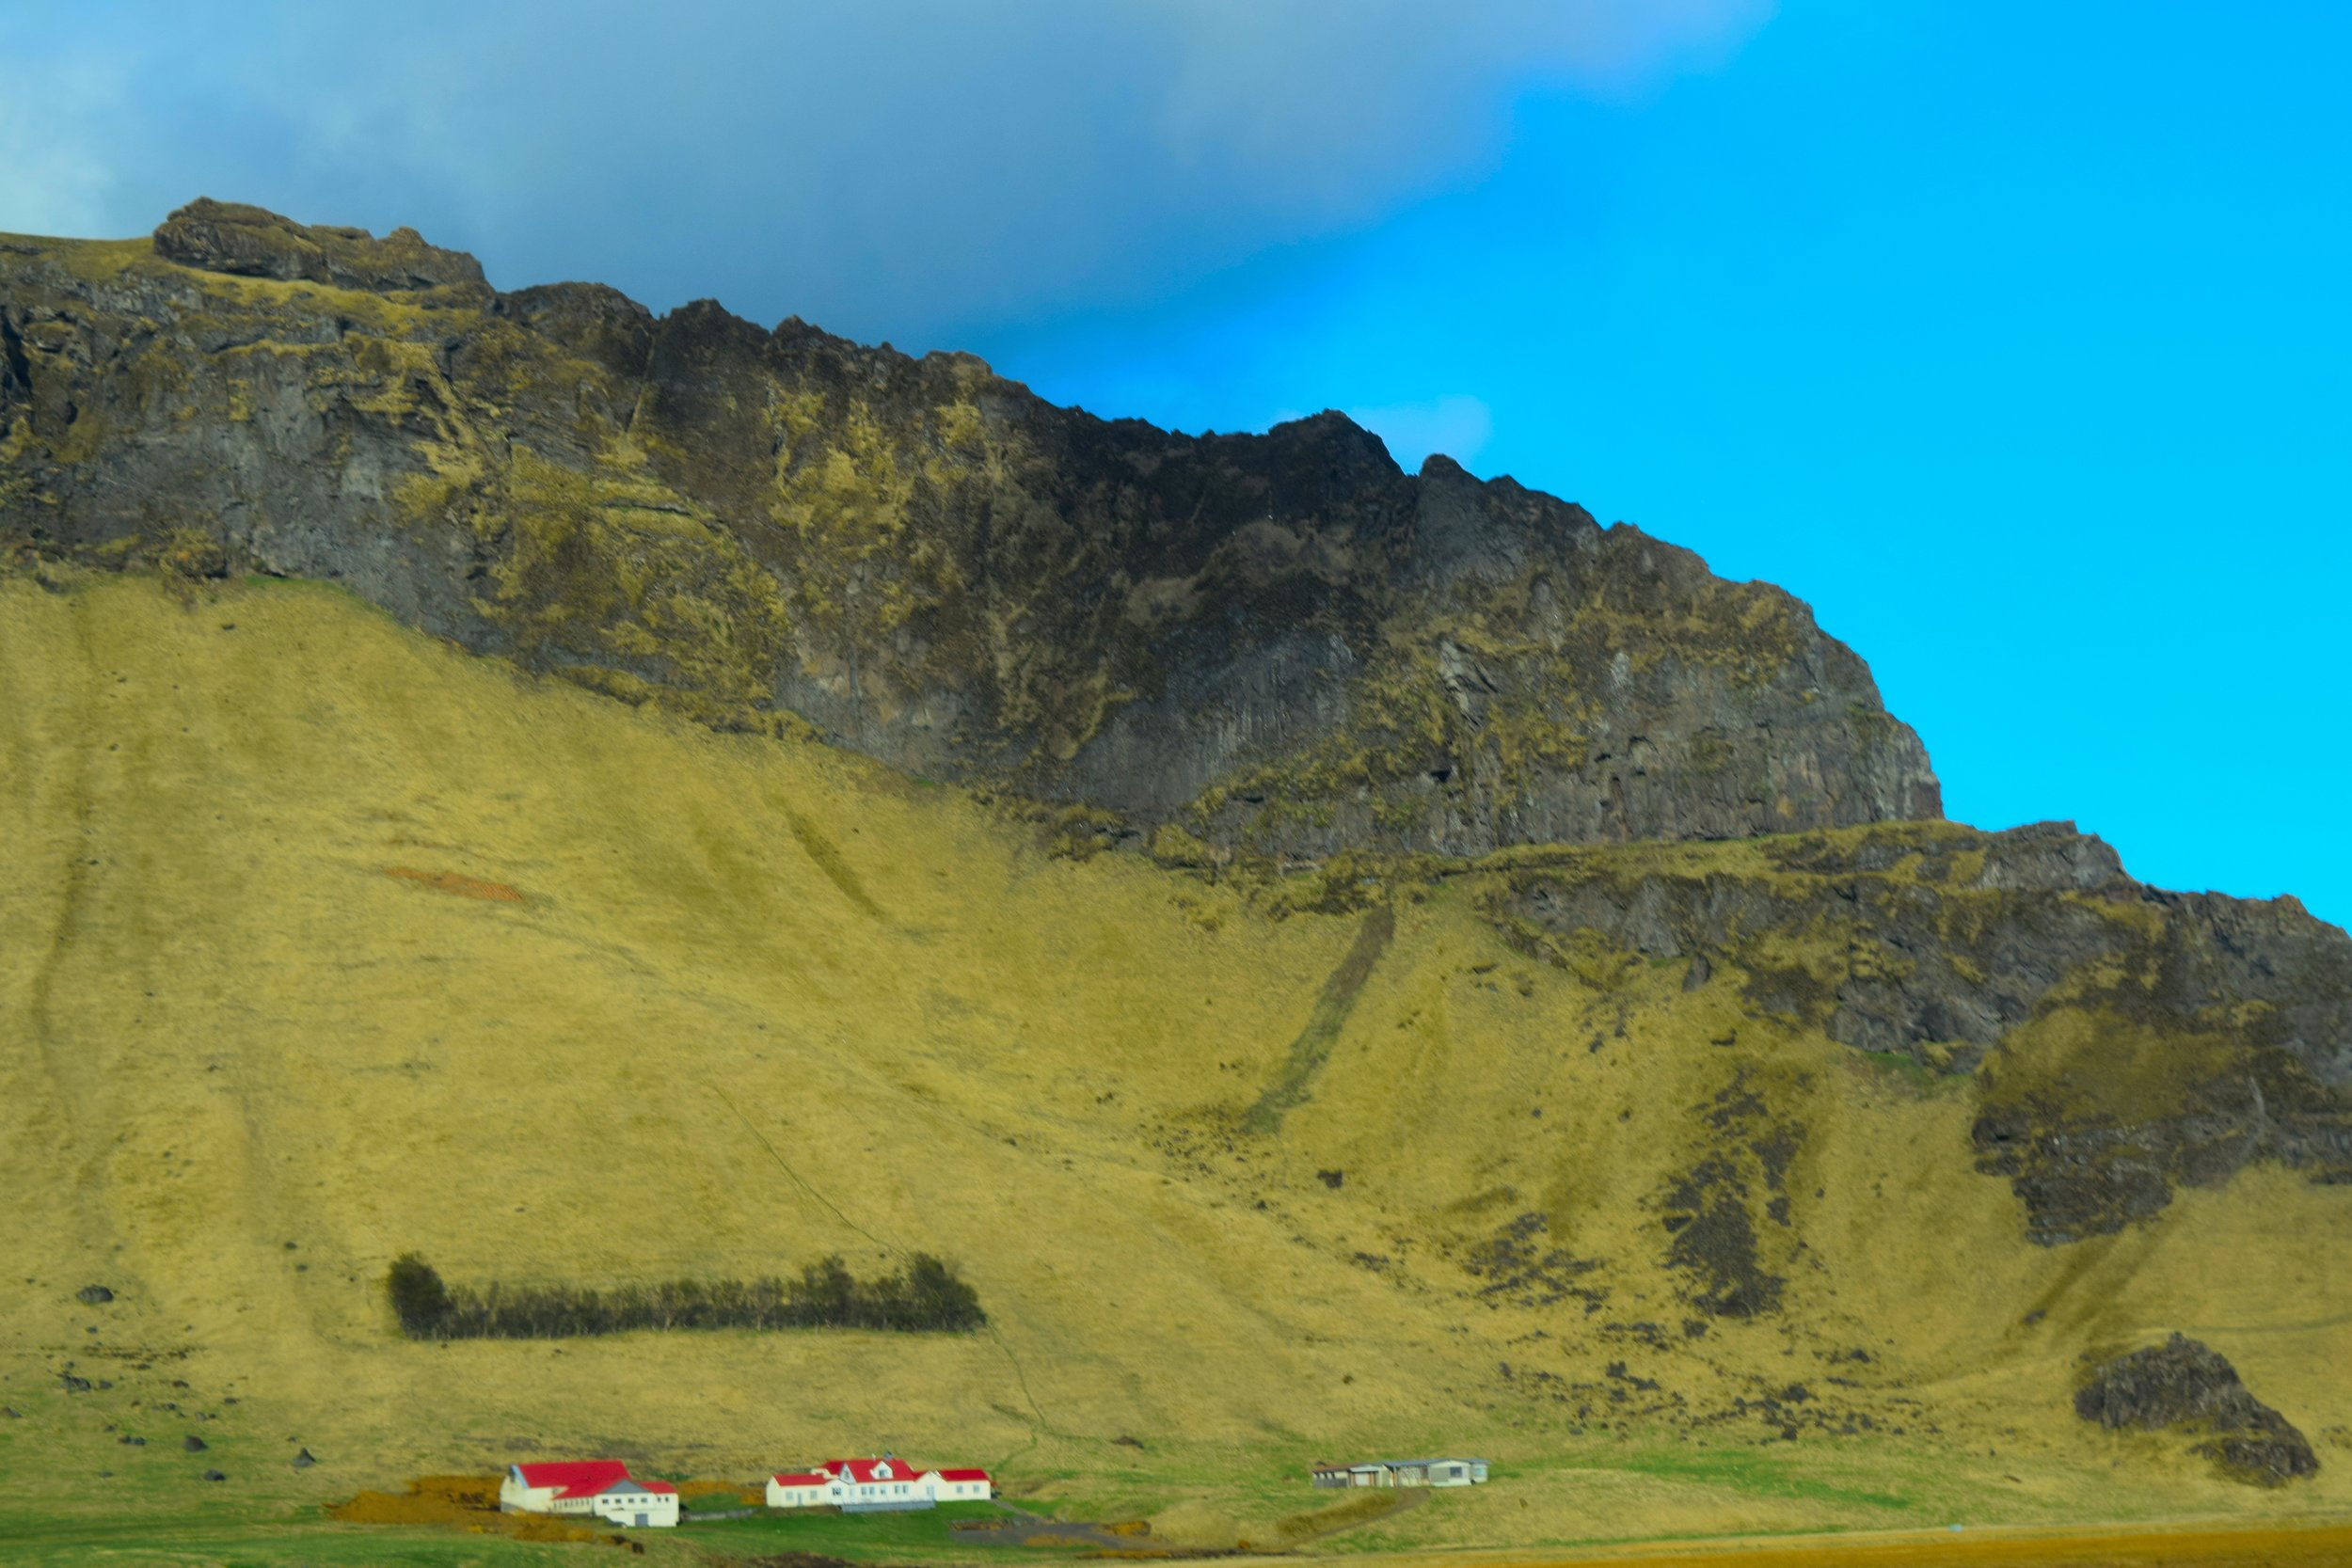 Views from the car in Iceland.